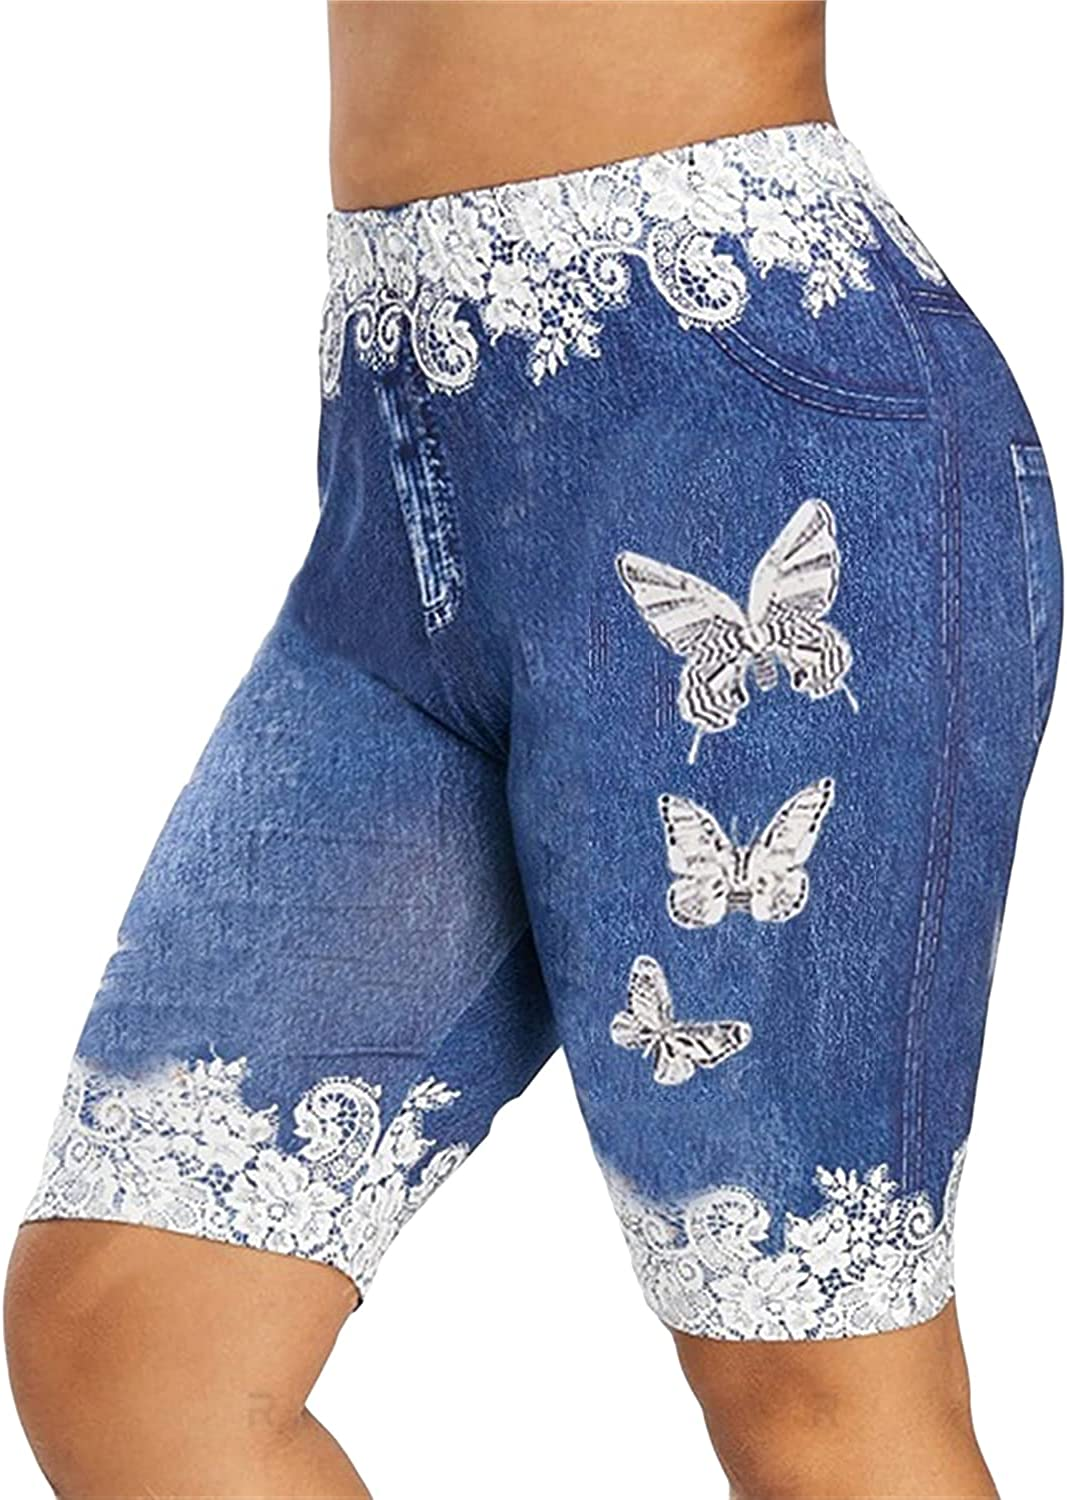 Women's Butterfly Print Short Max 66% OFF Jeans Bermuda Je Today's only Knee Length